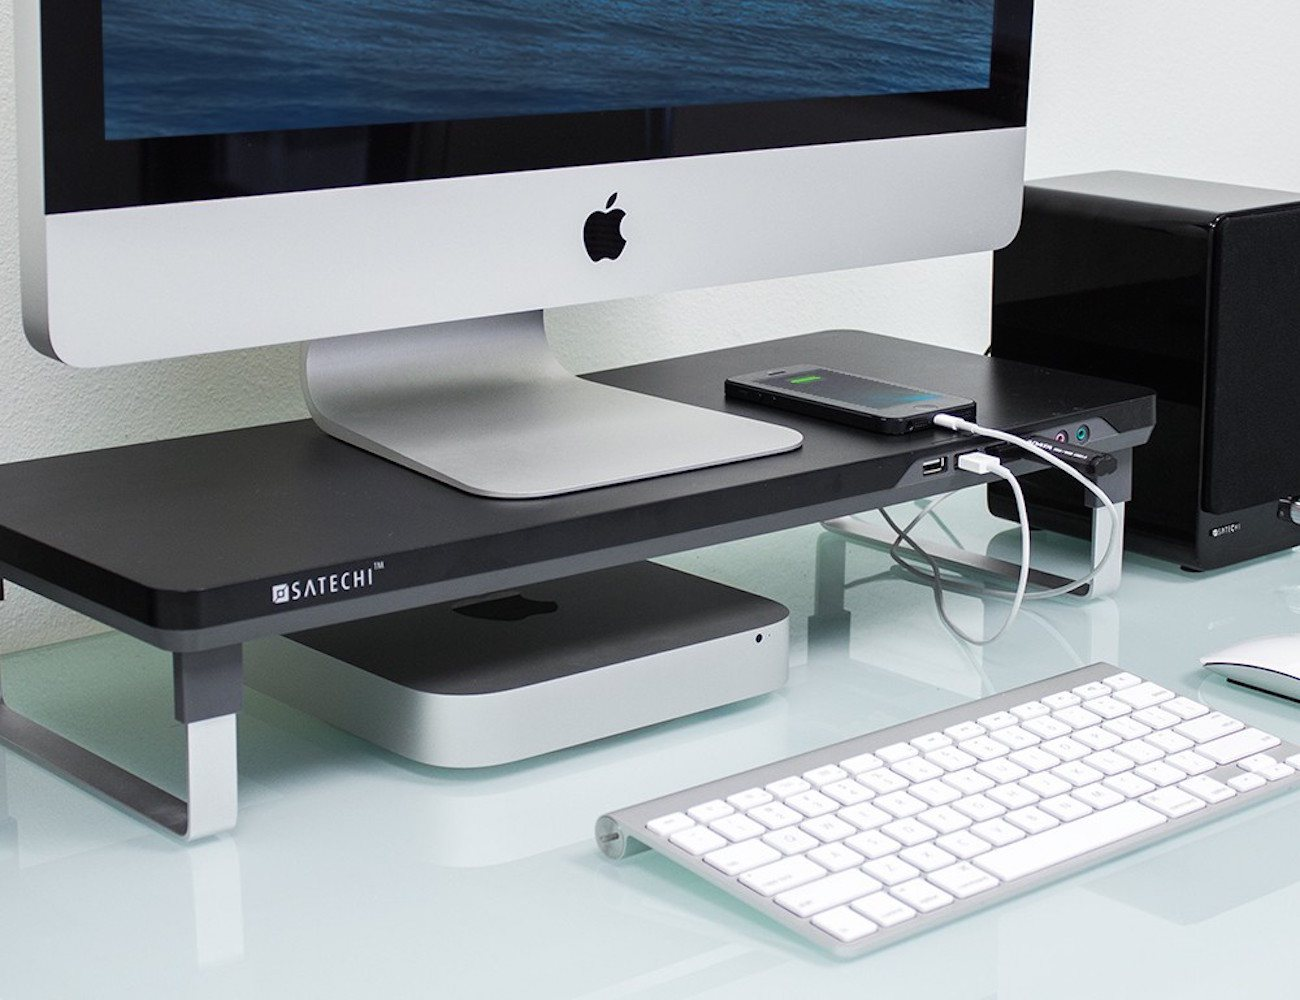 Satechi F3 Smart Monitor Stand 187 Gadget Flow